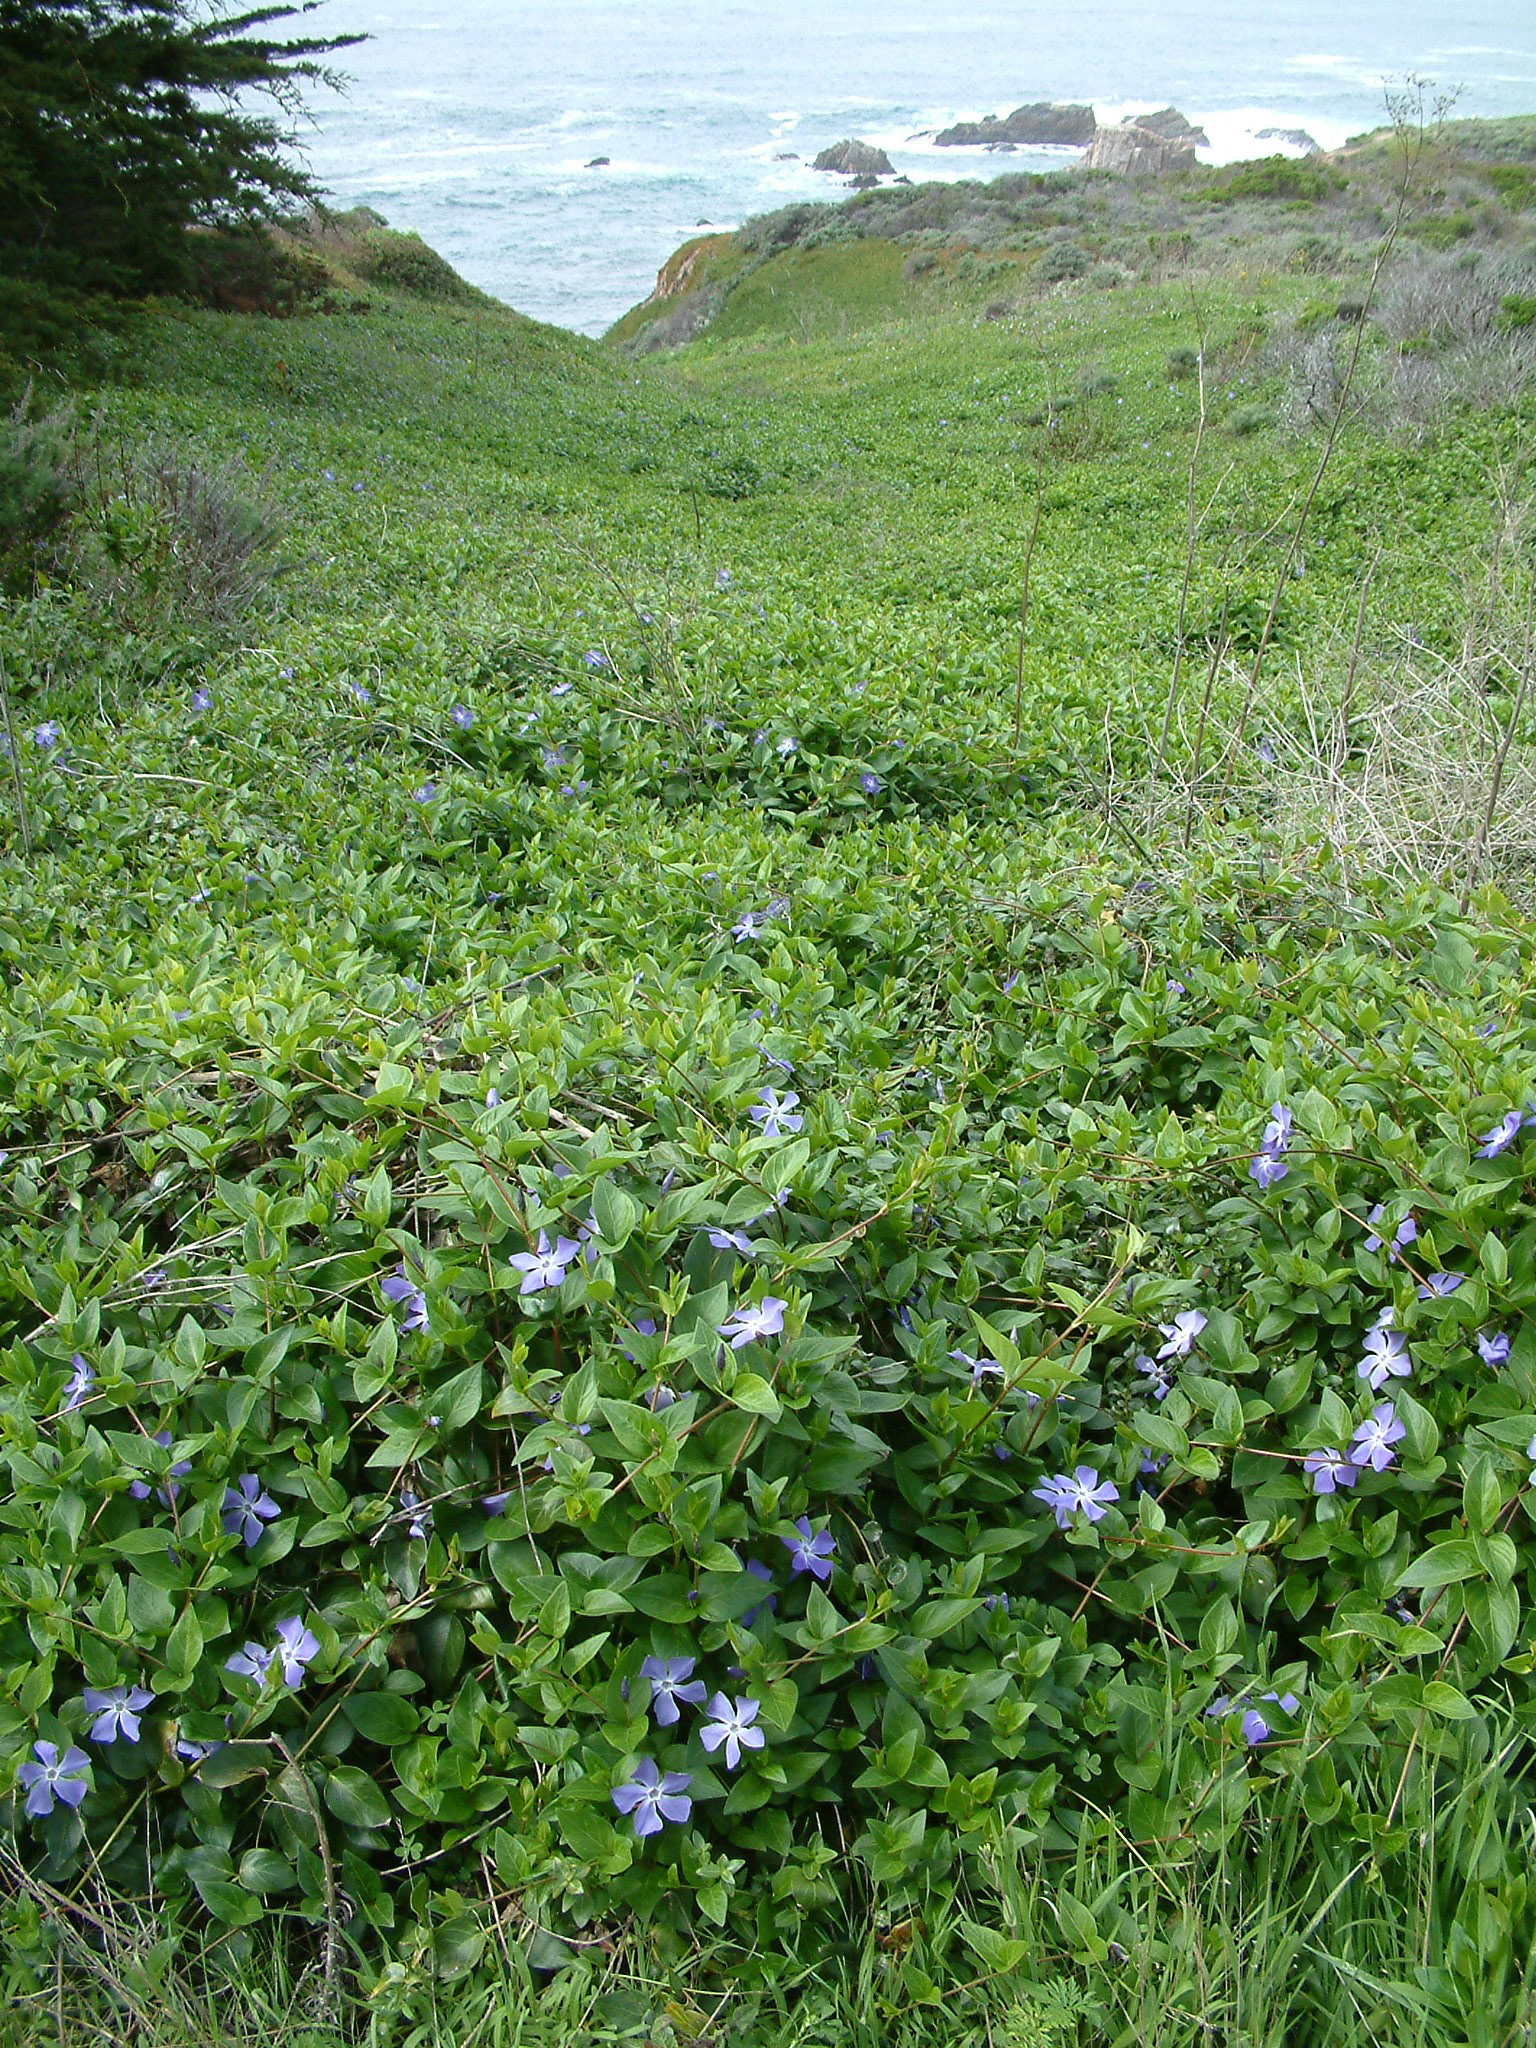 Big-leaf periwinkle (Vinca major) invasion Garrapata State Park